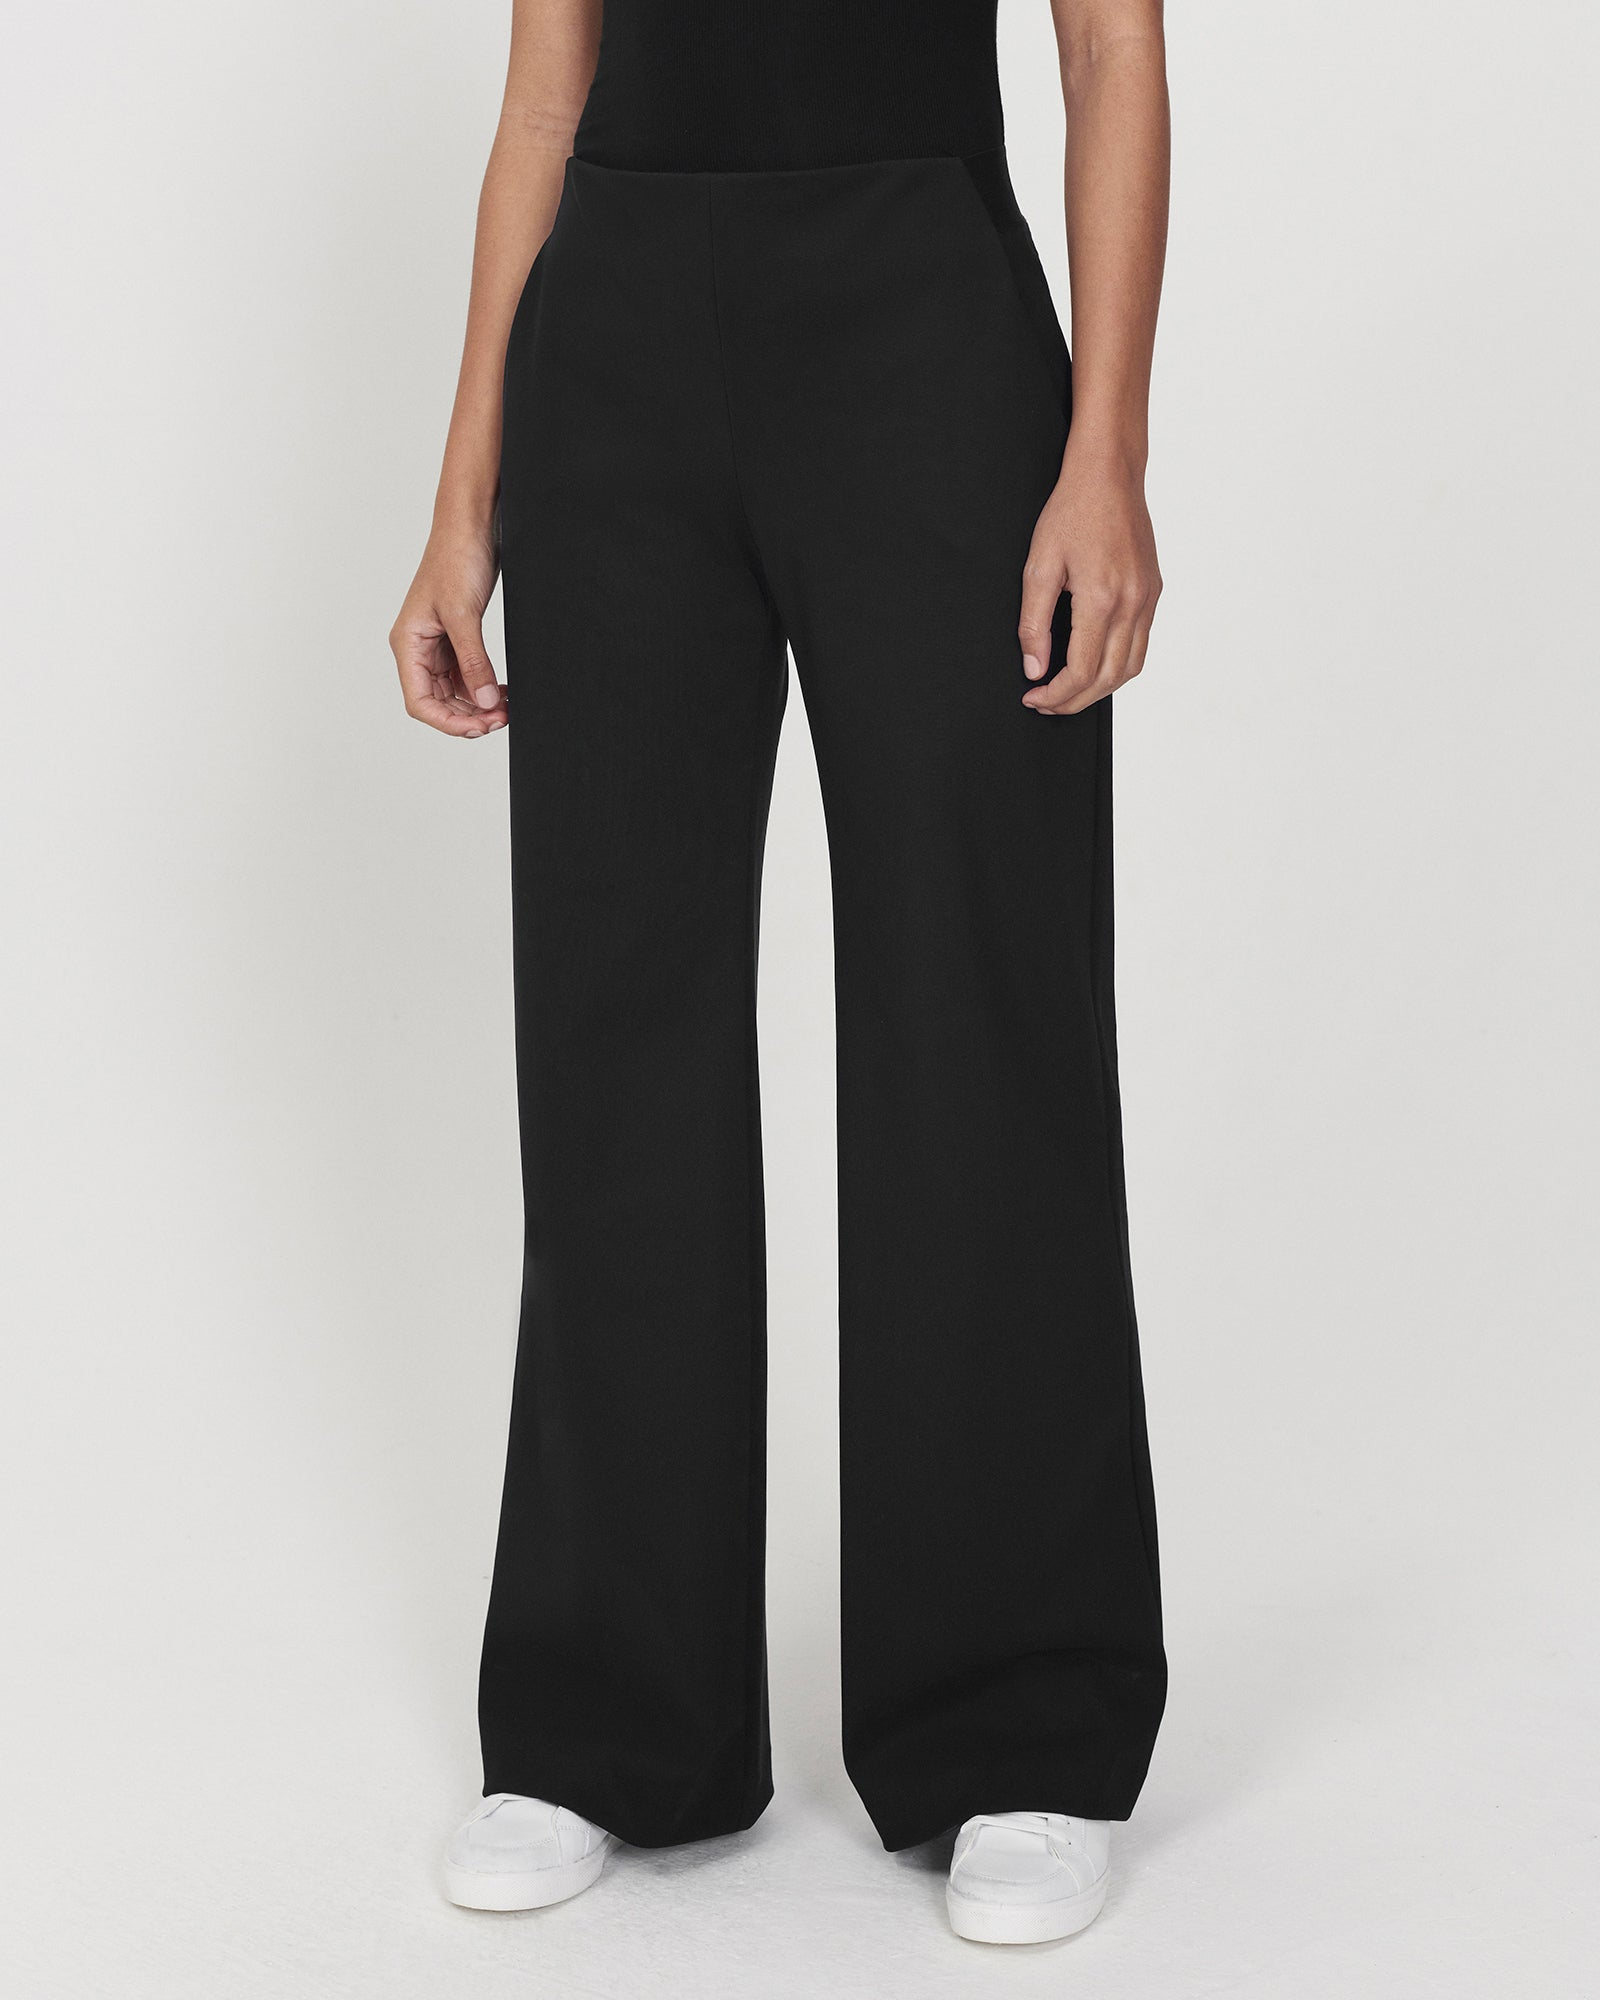 Collateral Pant Black